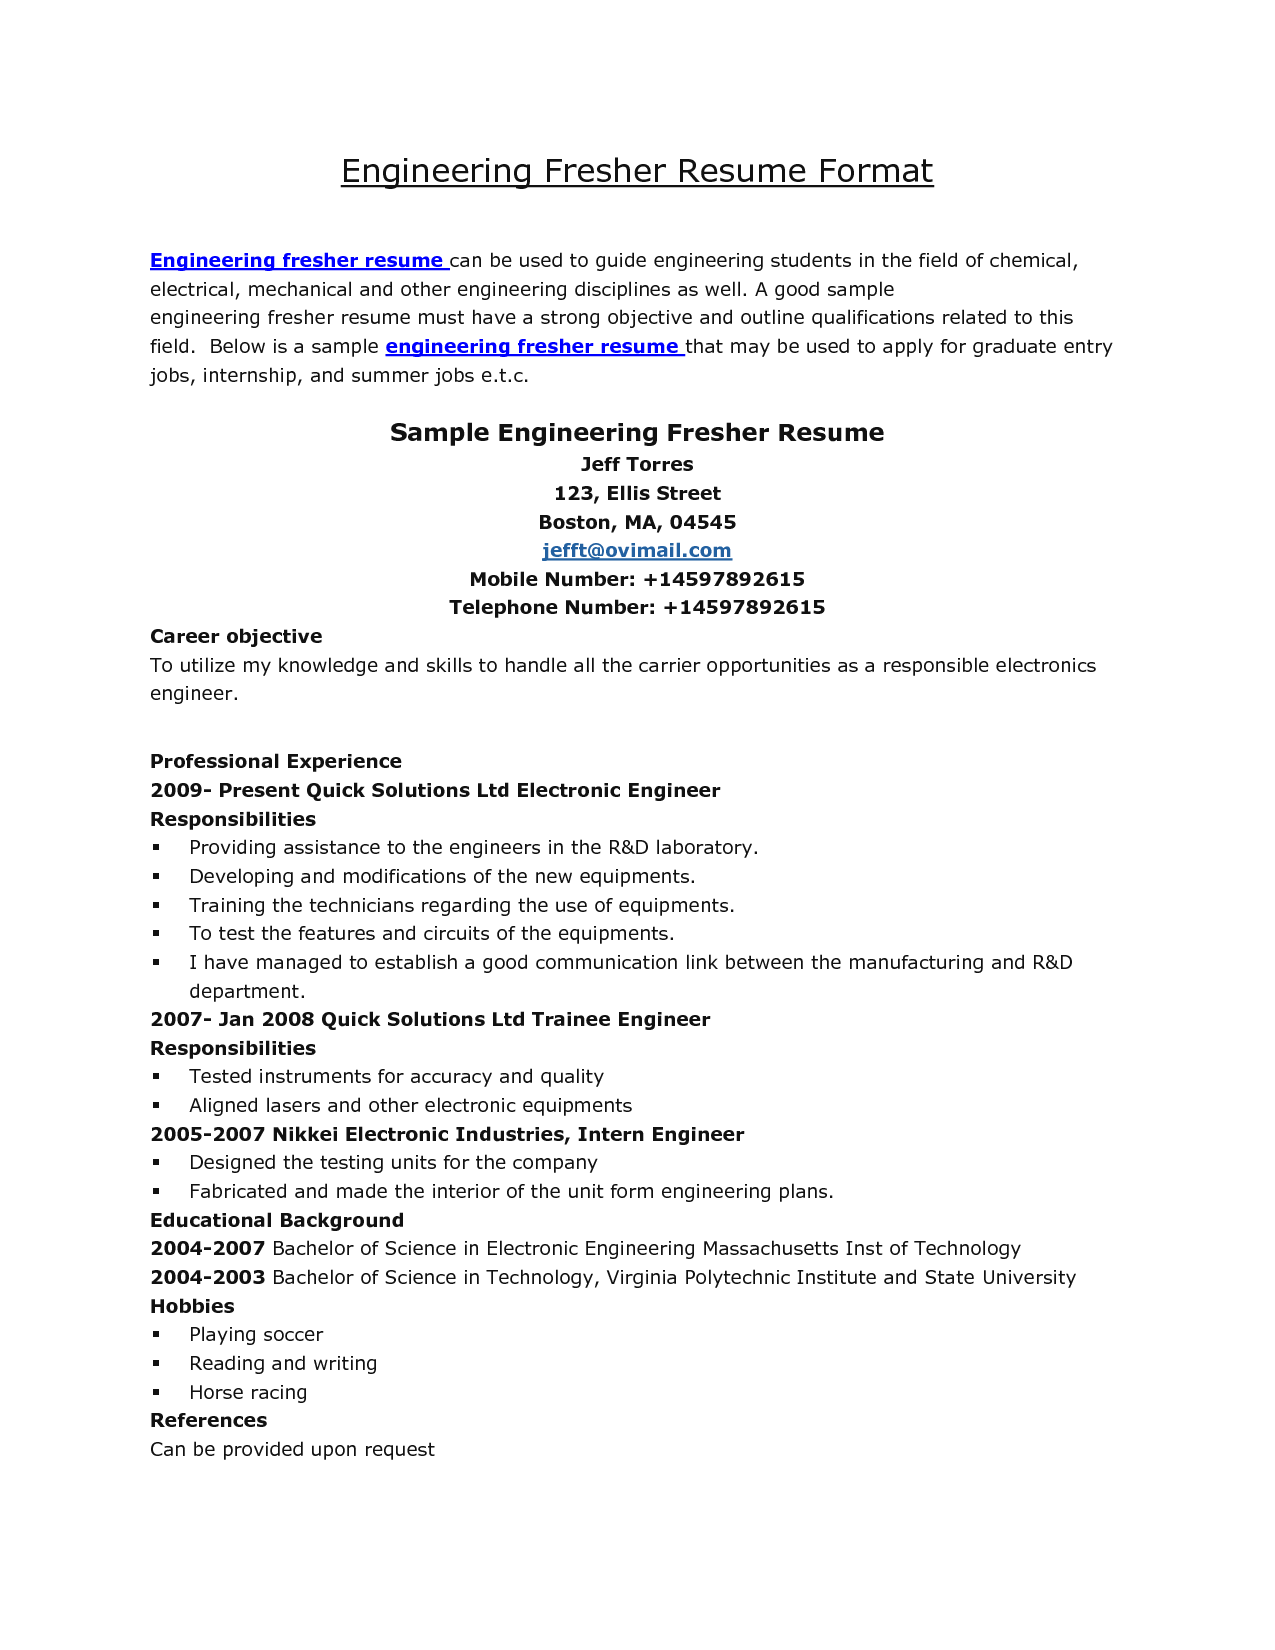 Engineering Resume Samples Resume Format For Engineering Students Http Www